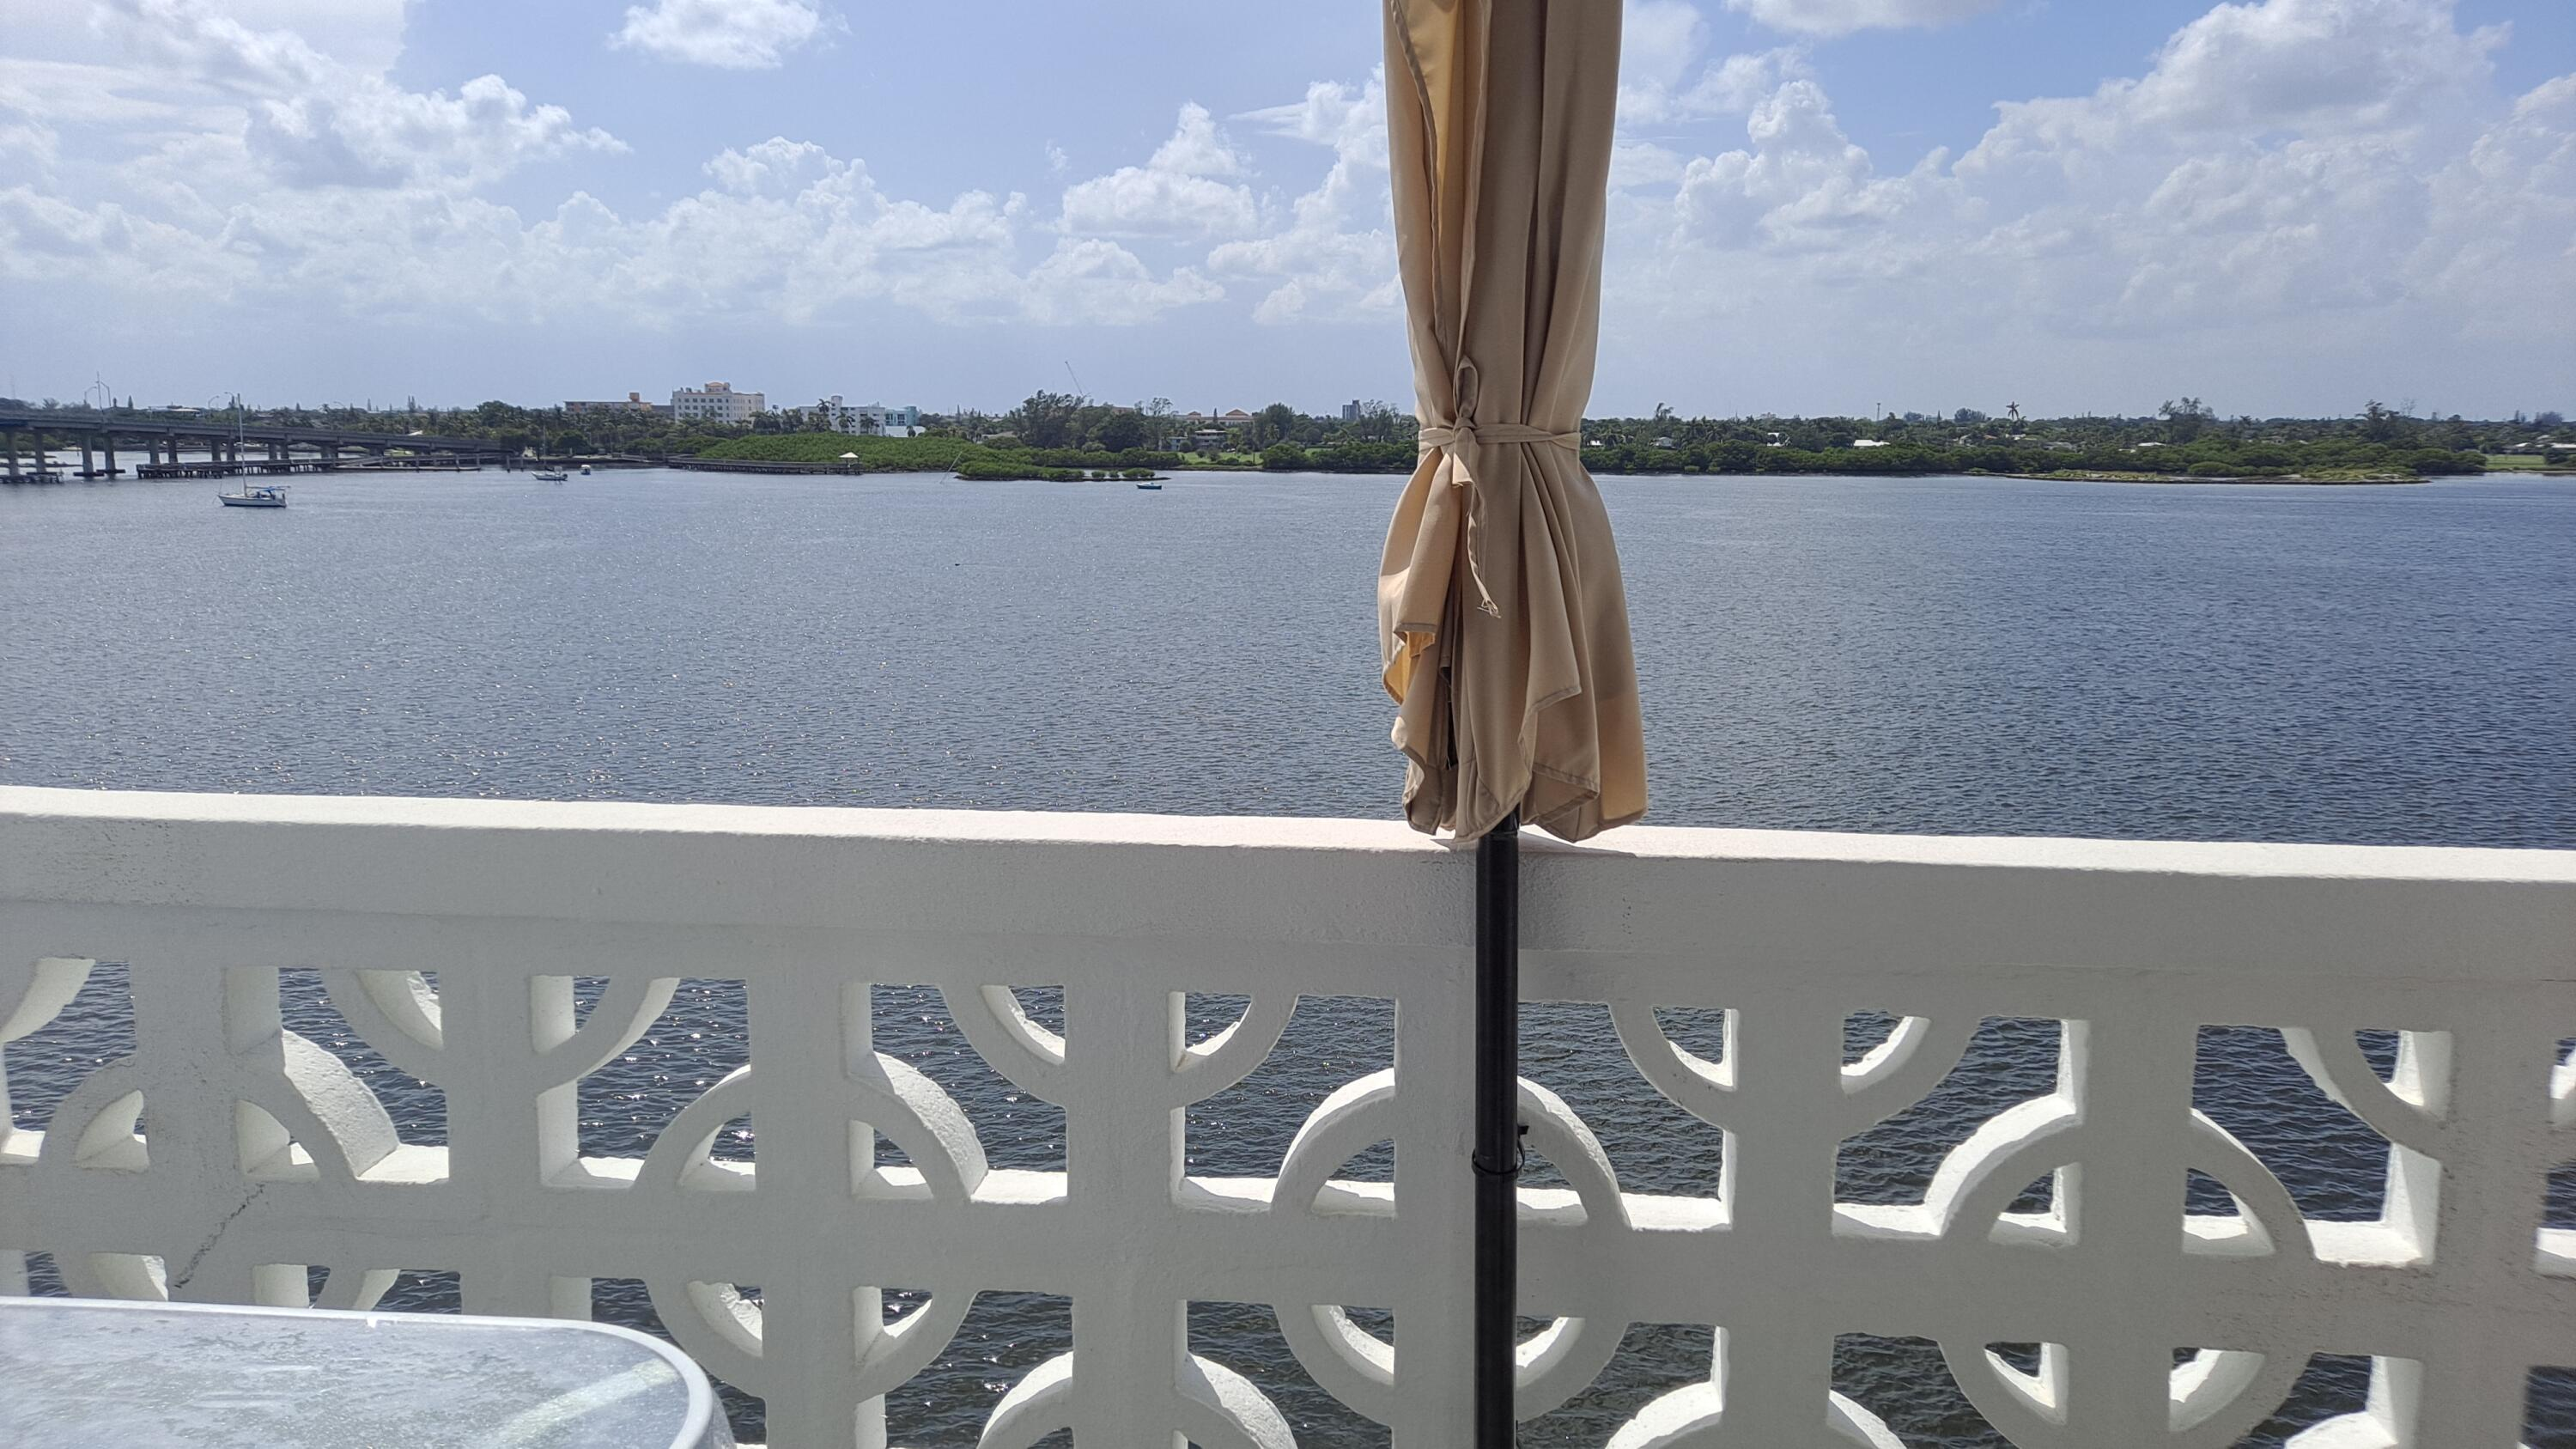 Beautifully renovated Palm Beach 1 bedroom 1 bath apt with amazing direct intracoastal views! Open kitchen, white cabinets and appliances, granite countertops, tiled floors and hurricane impact windows and doors. relax and watch the intracoastal waterway and see the sunset from your balcony every day. You can access the beach right across the street. And you can walk right across the street to the Four Seasons Resort to enjoy a nice meal. Great location for a beach get away or to  enjoy year round.